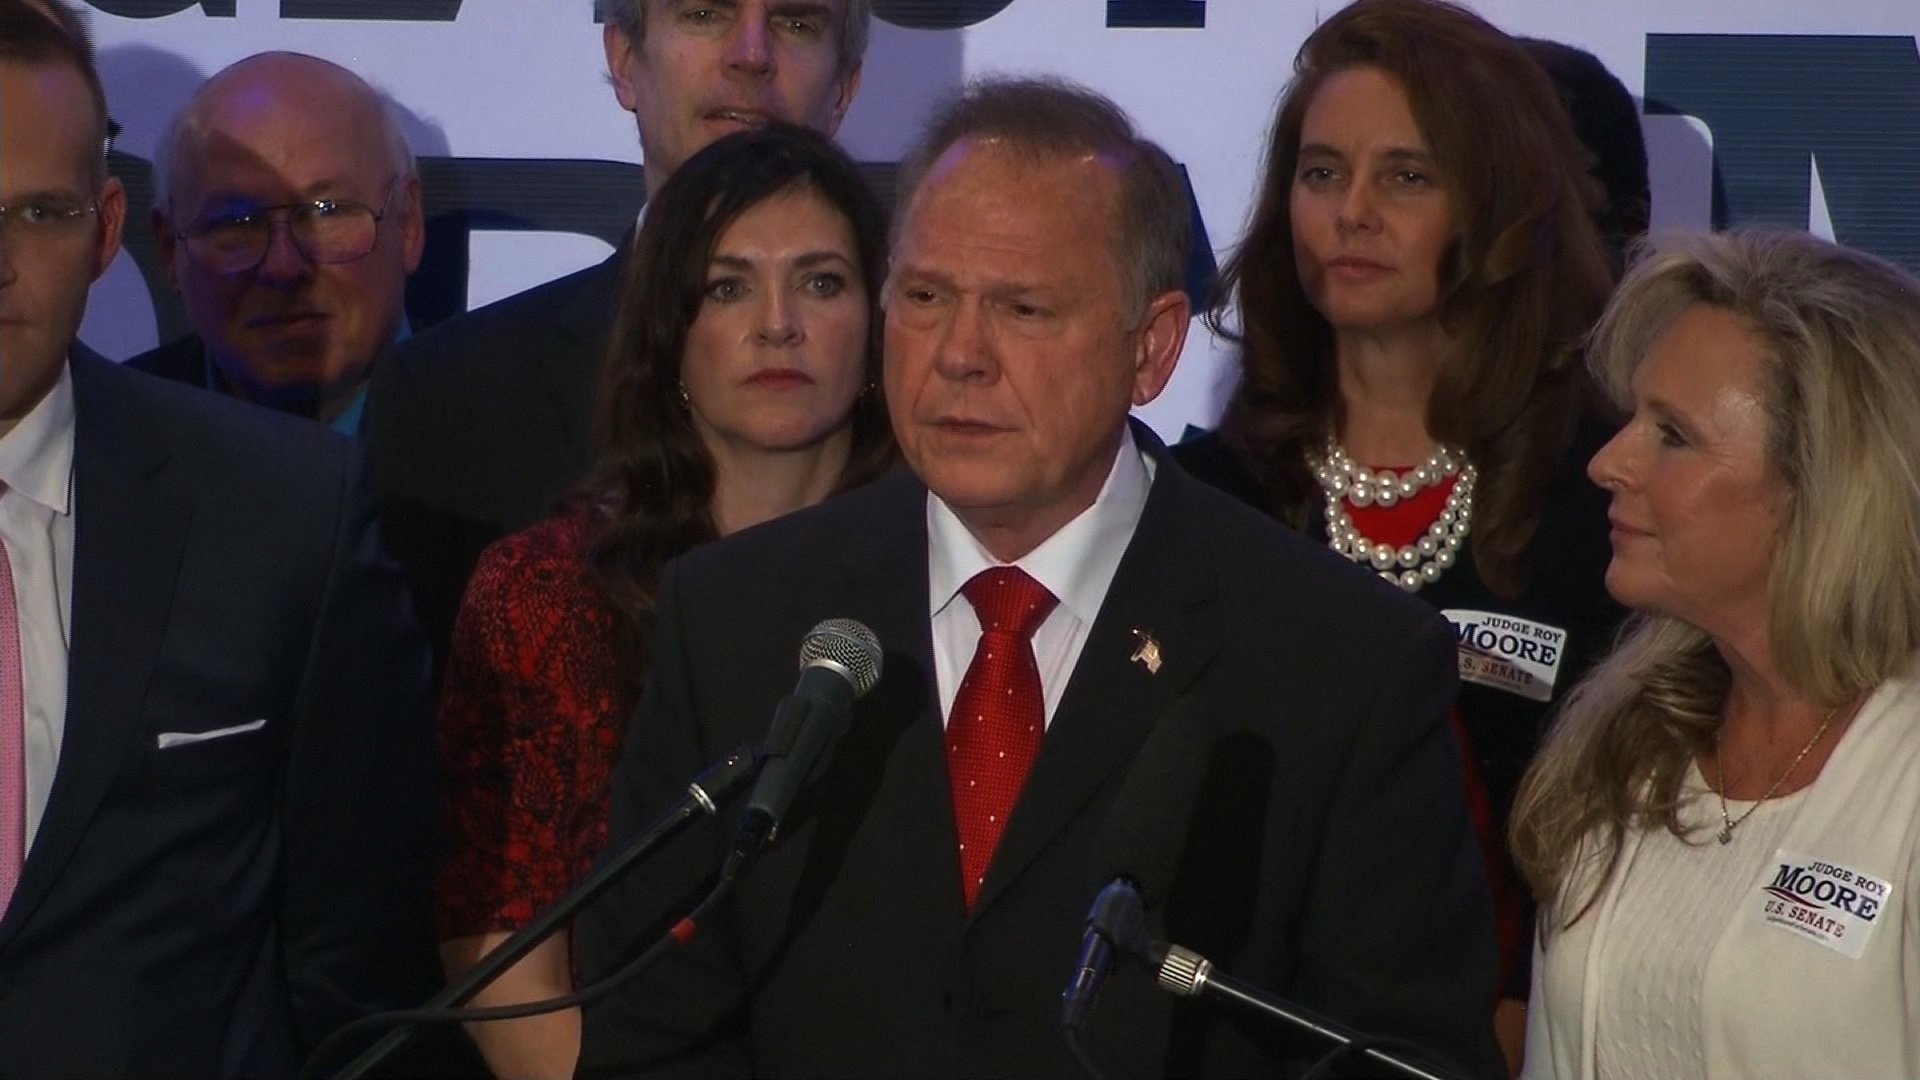 WENY News - Trump won\u0027t campaign with Moore, White House says